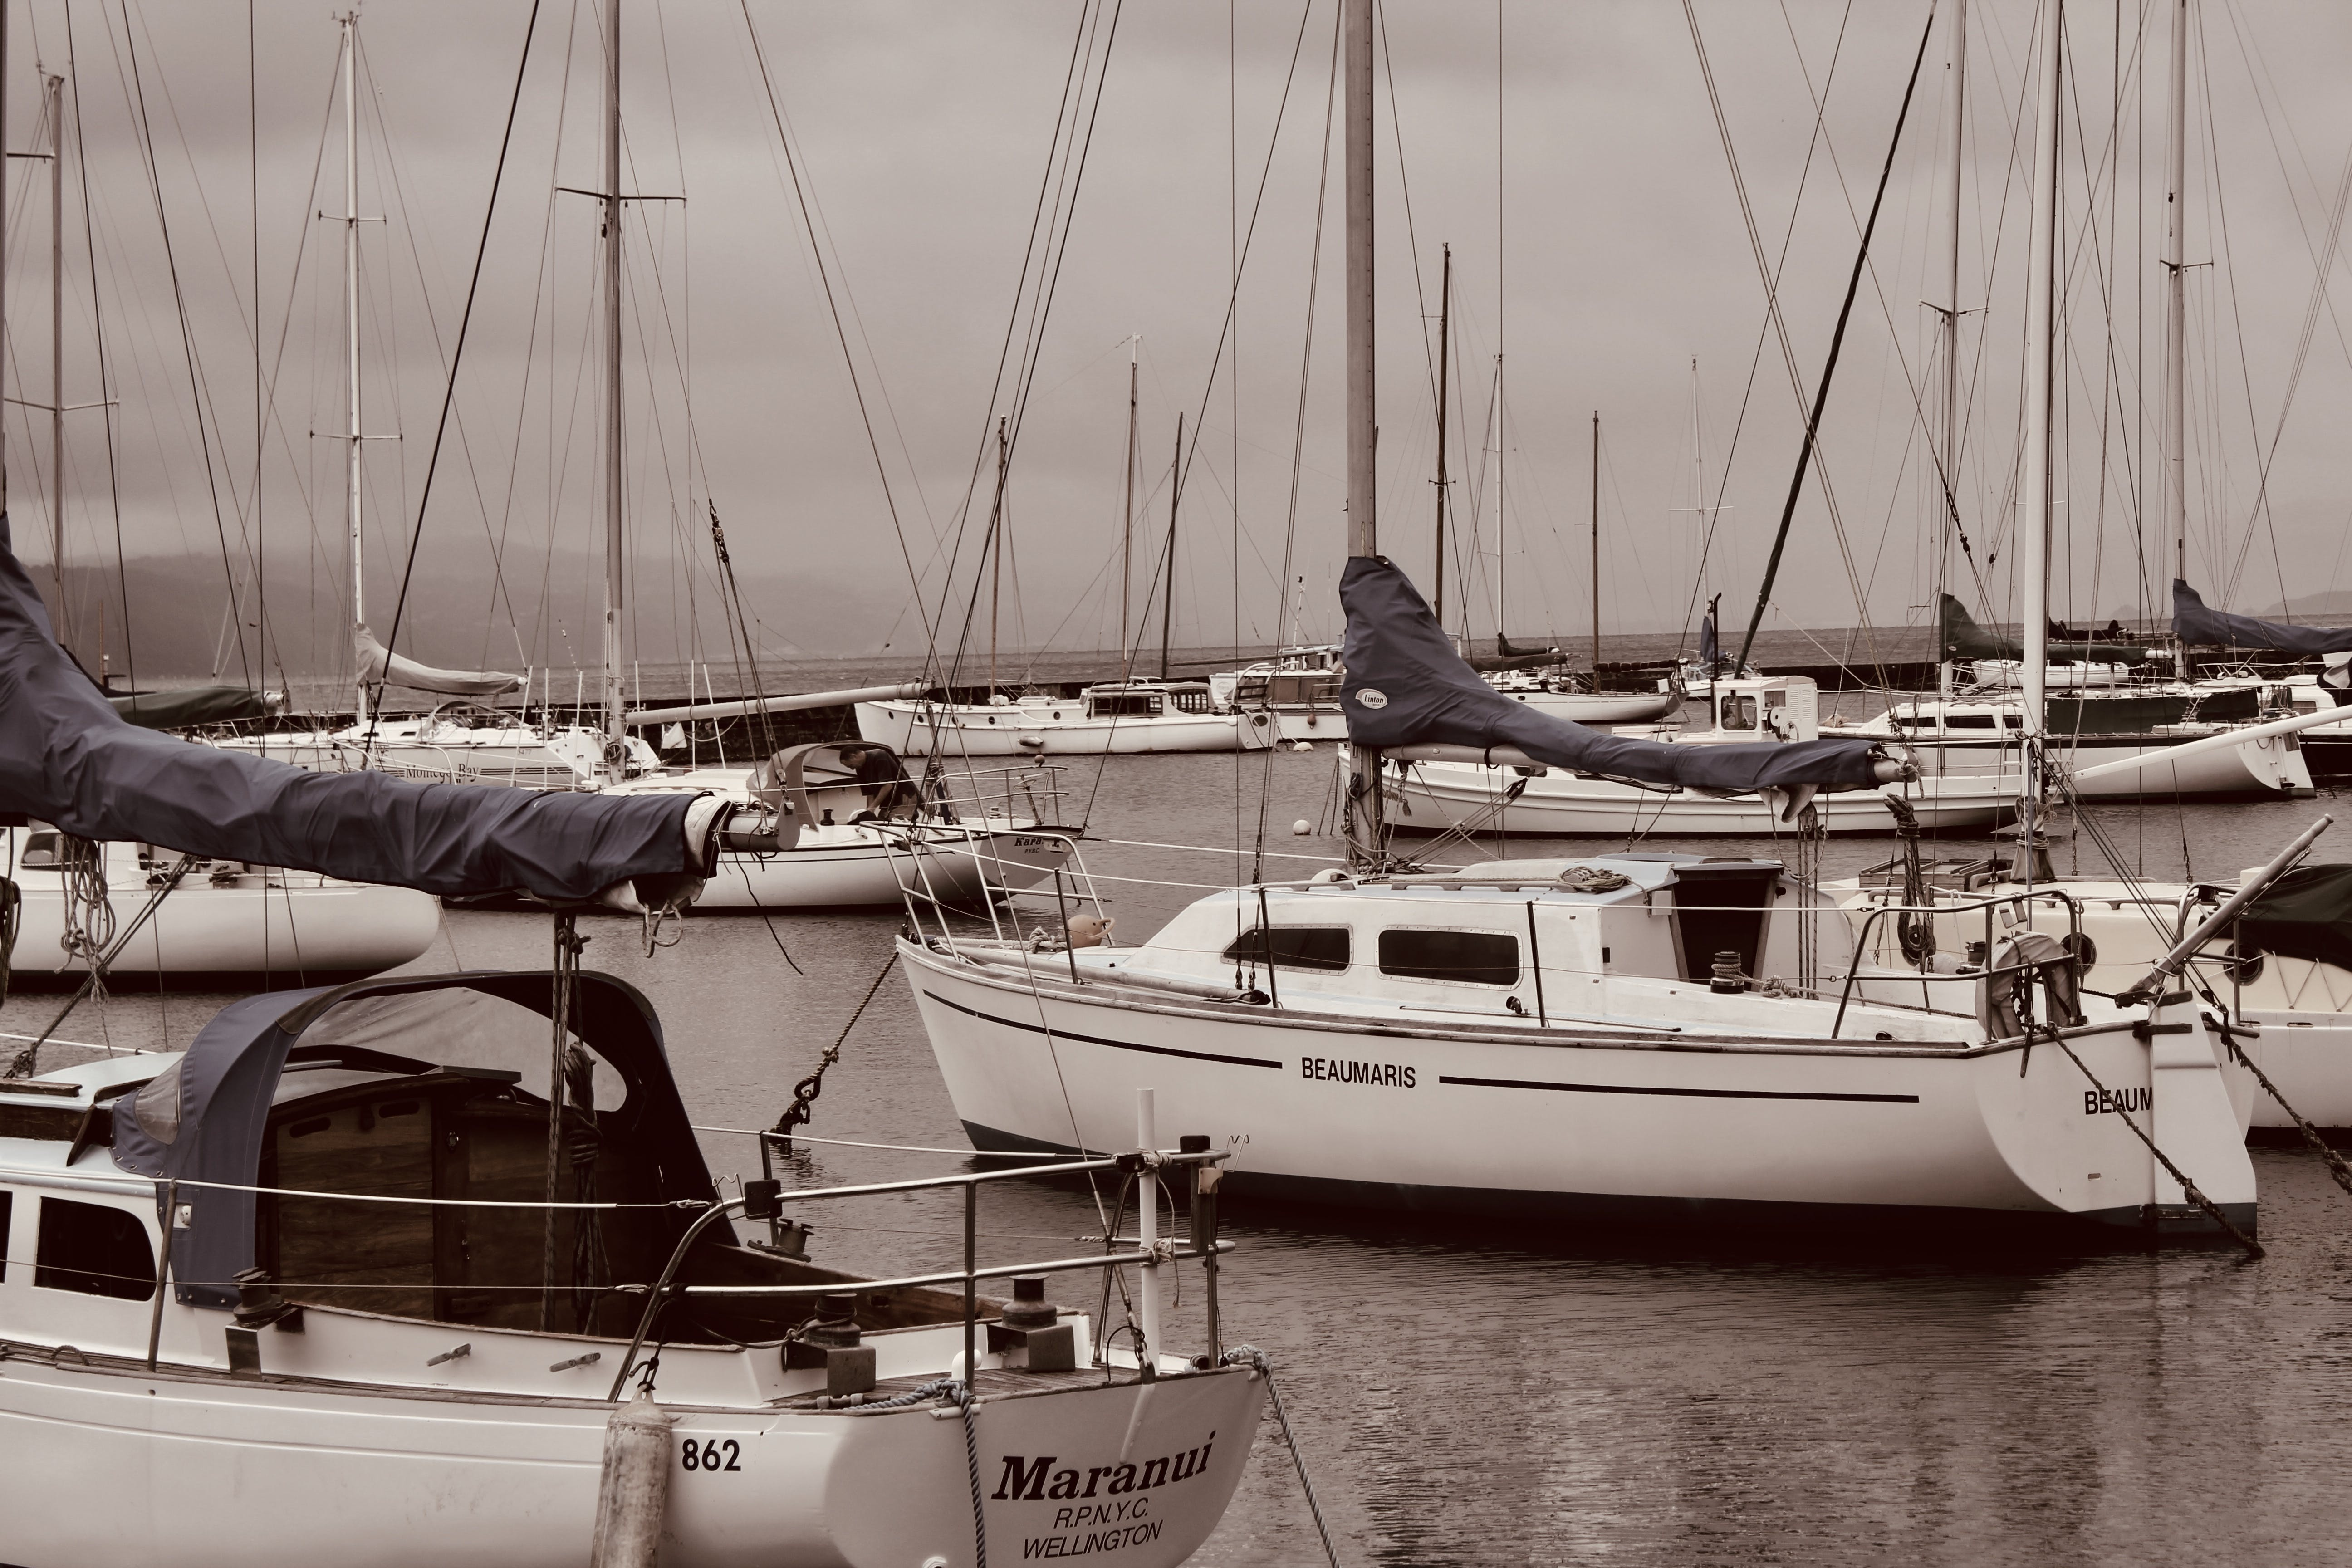 Free stock photo of boats, harbour, hills, masts